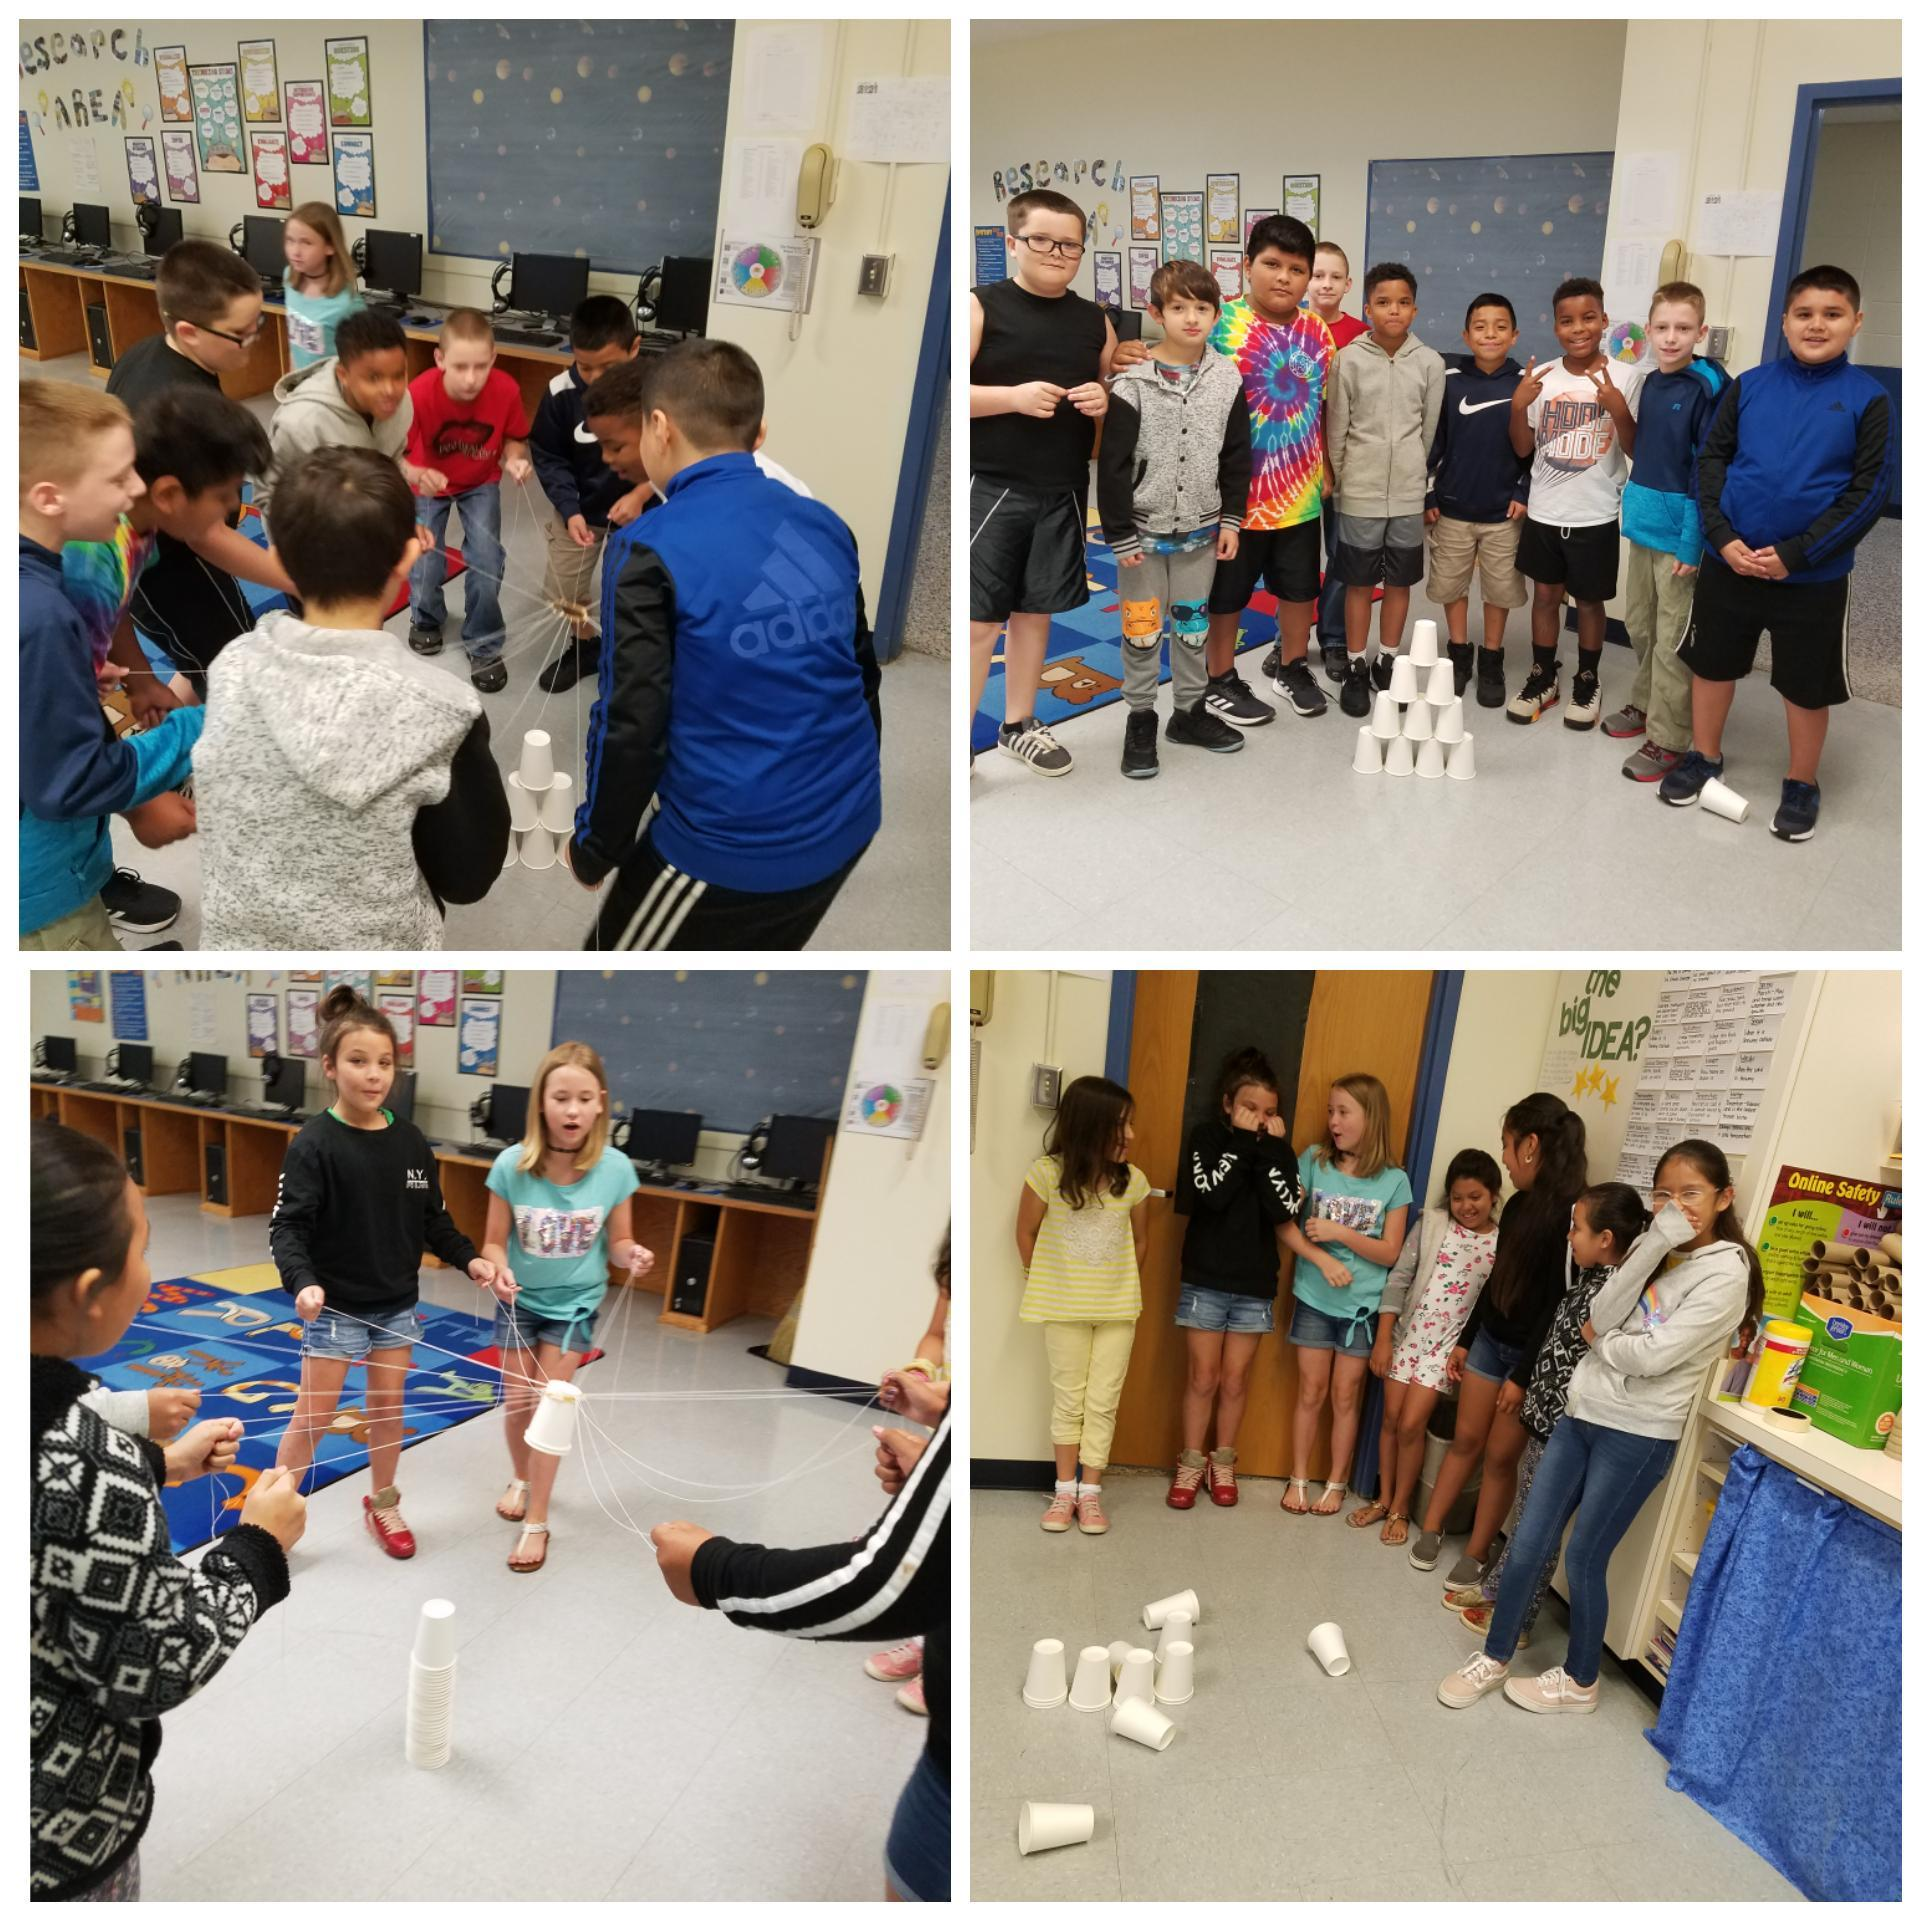 Team building w/ cup towers